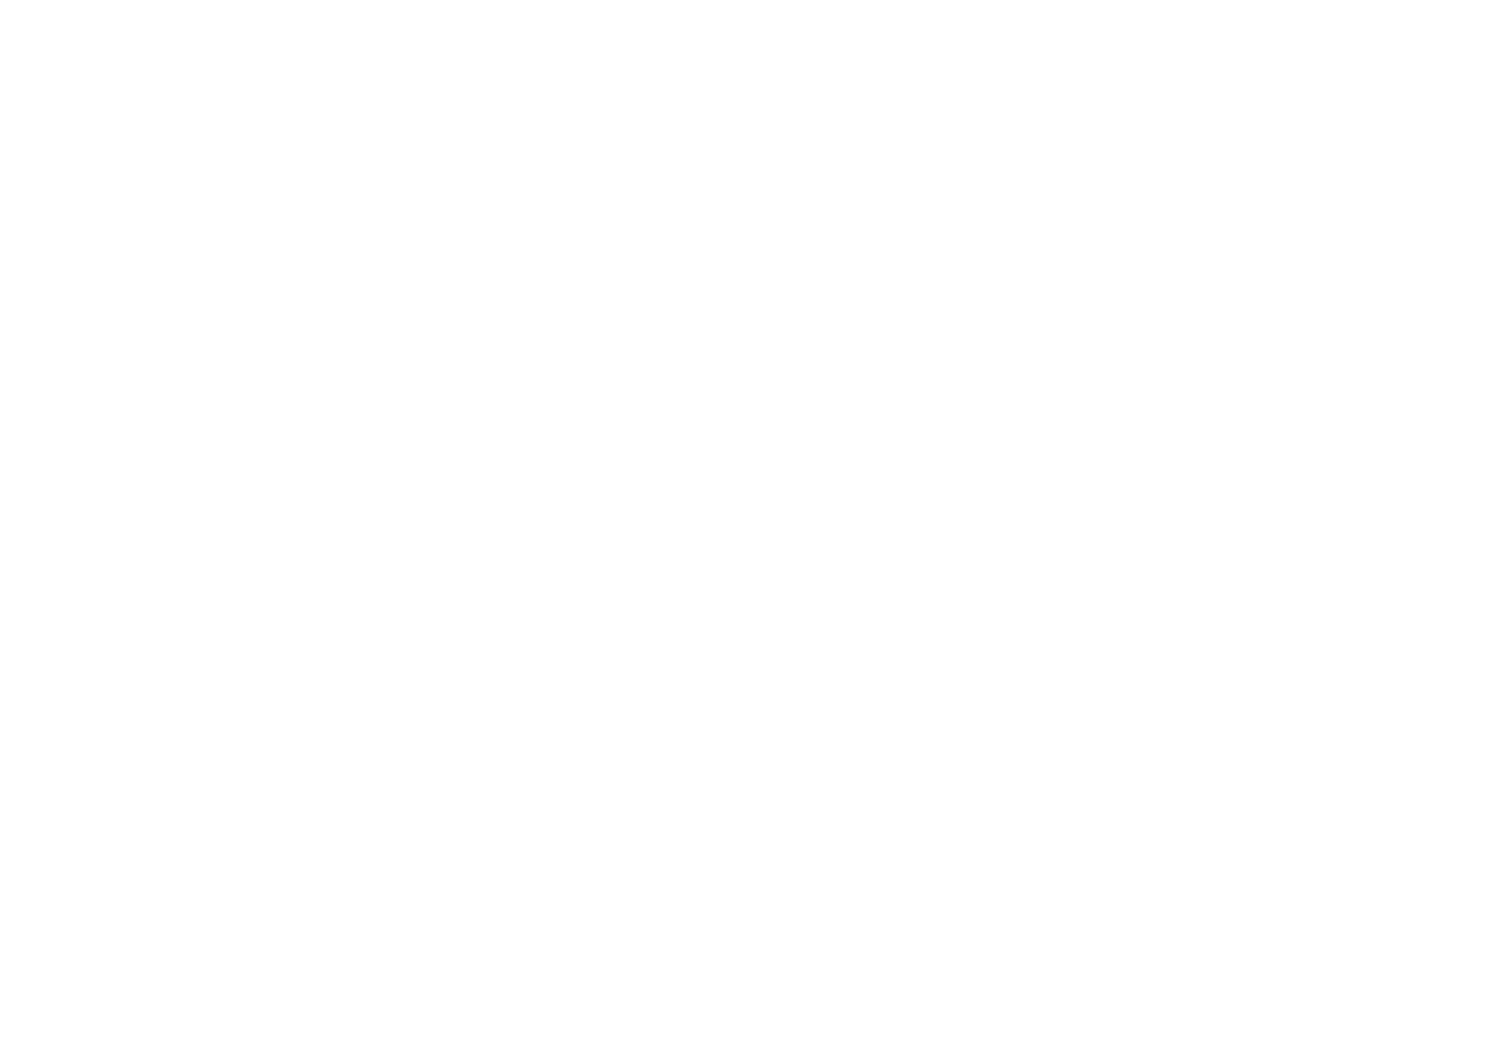 Basement Galley | the Underground Supper Club